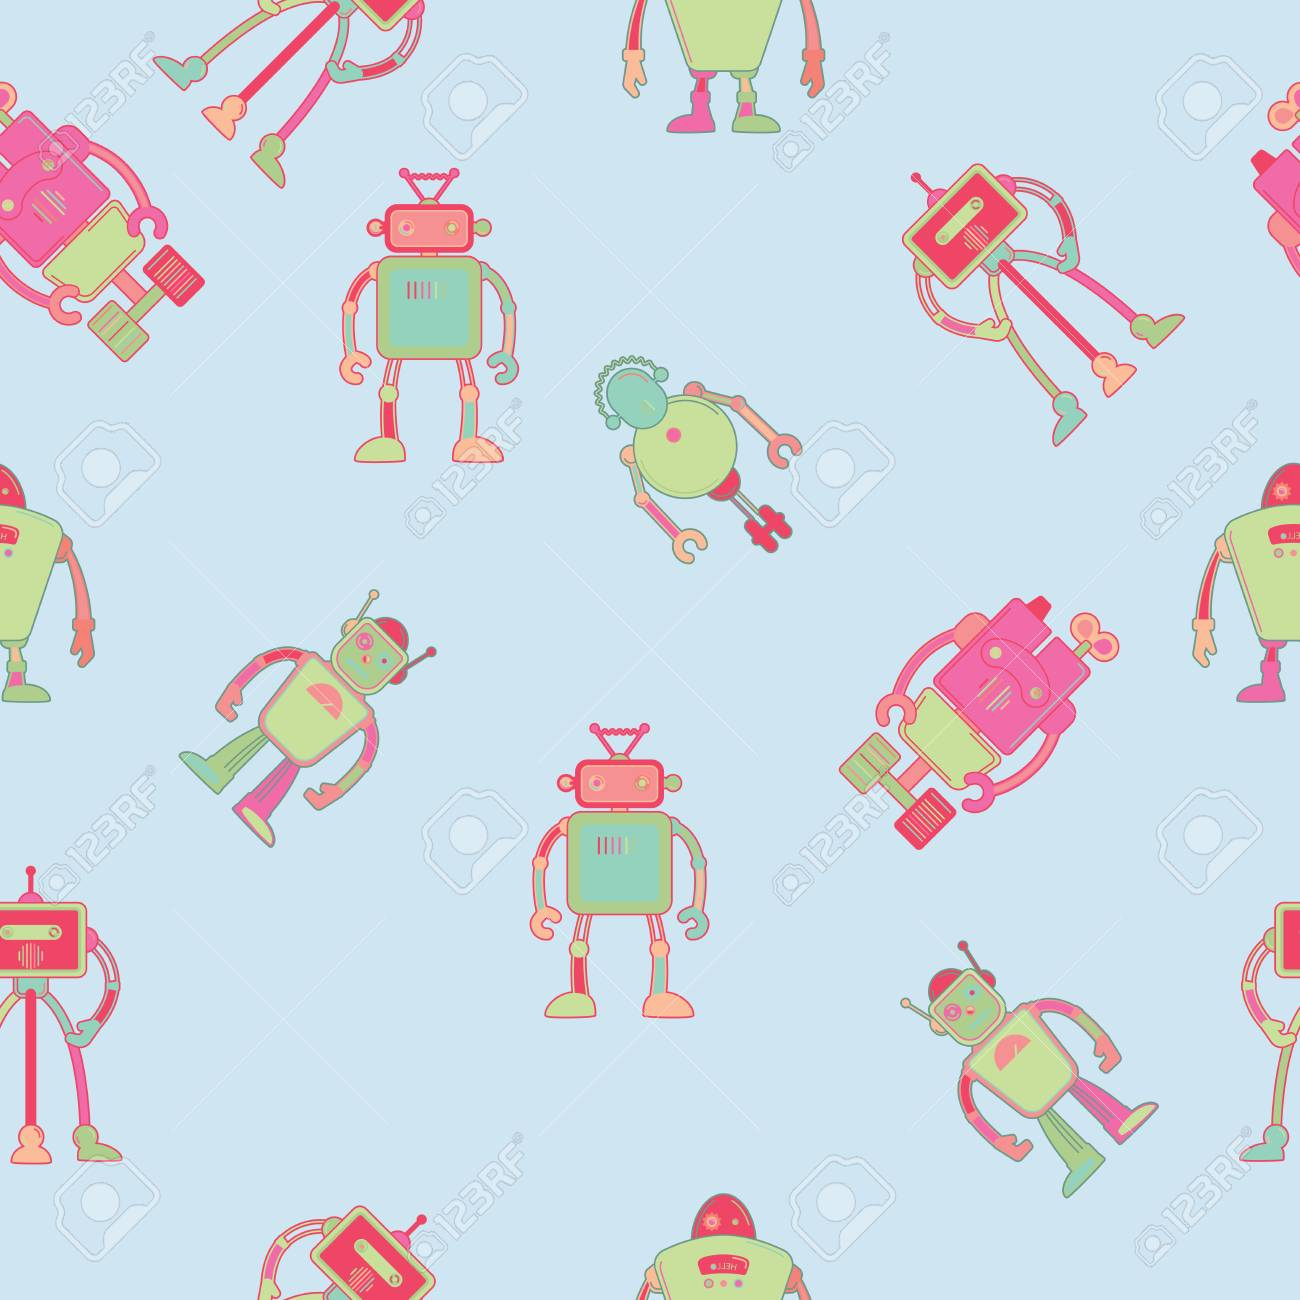 Seamless Pattern For Kids Wallpaper Design With Robots Vector Illustration Stock